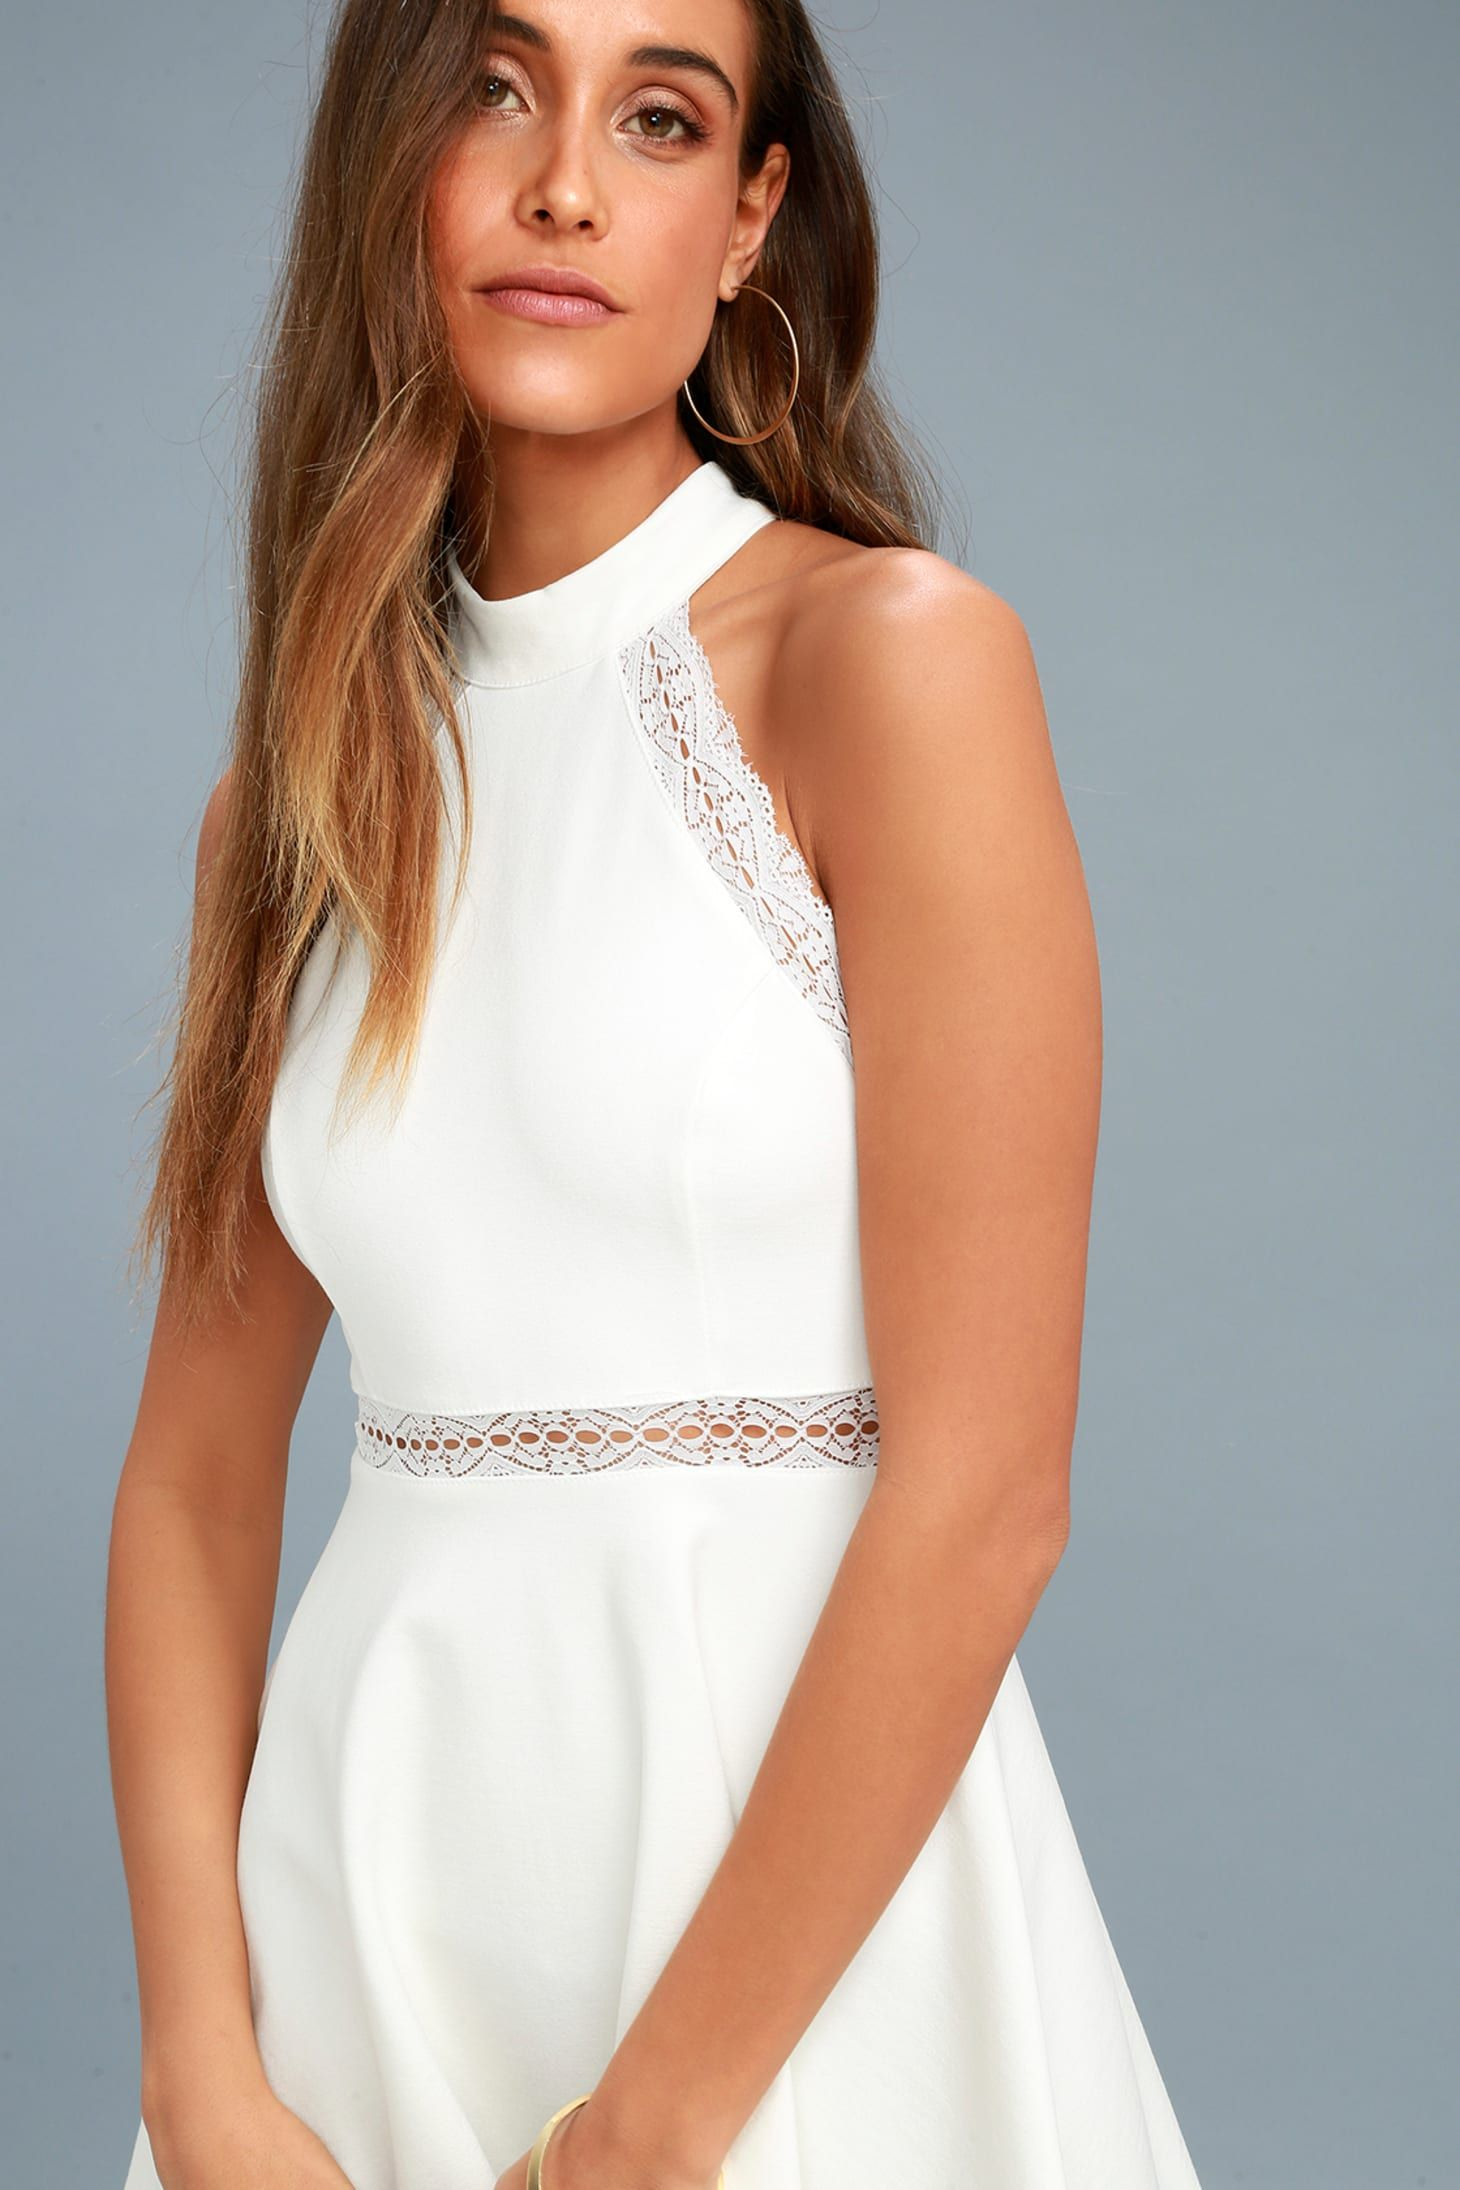 Reach Out My Hand White Lace Skater Dress In 2021 White Lace Skater Dress Lace Skater Dress Knit Skater Dress [ 2190 x 1460 Pixel ]